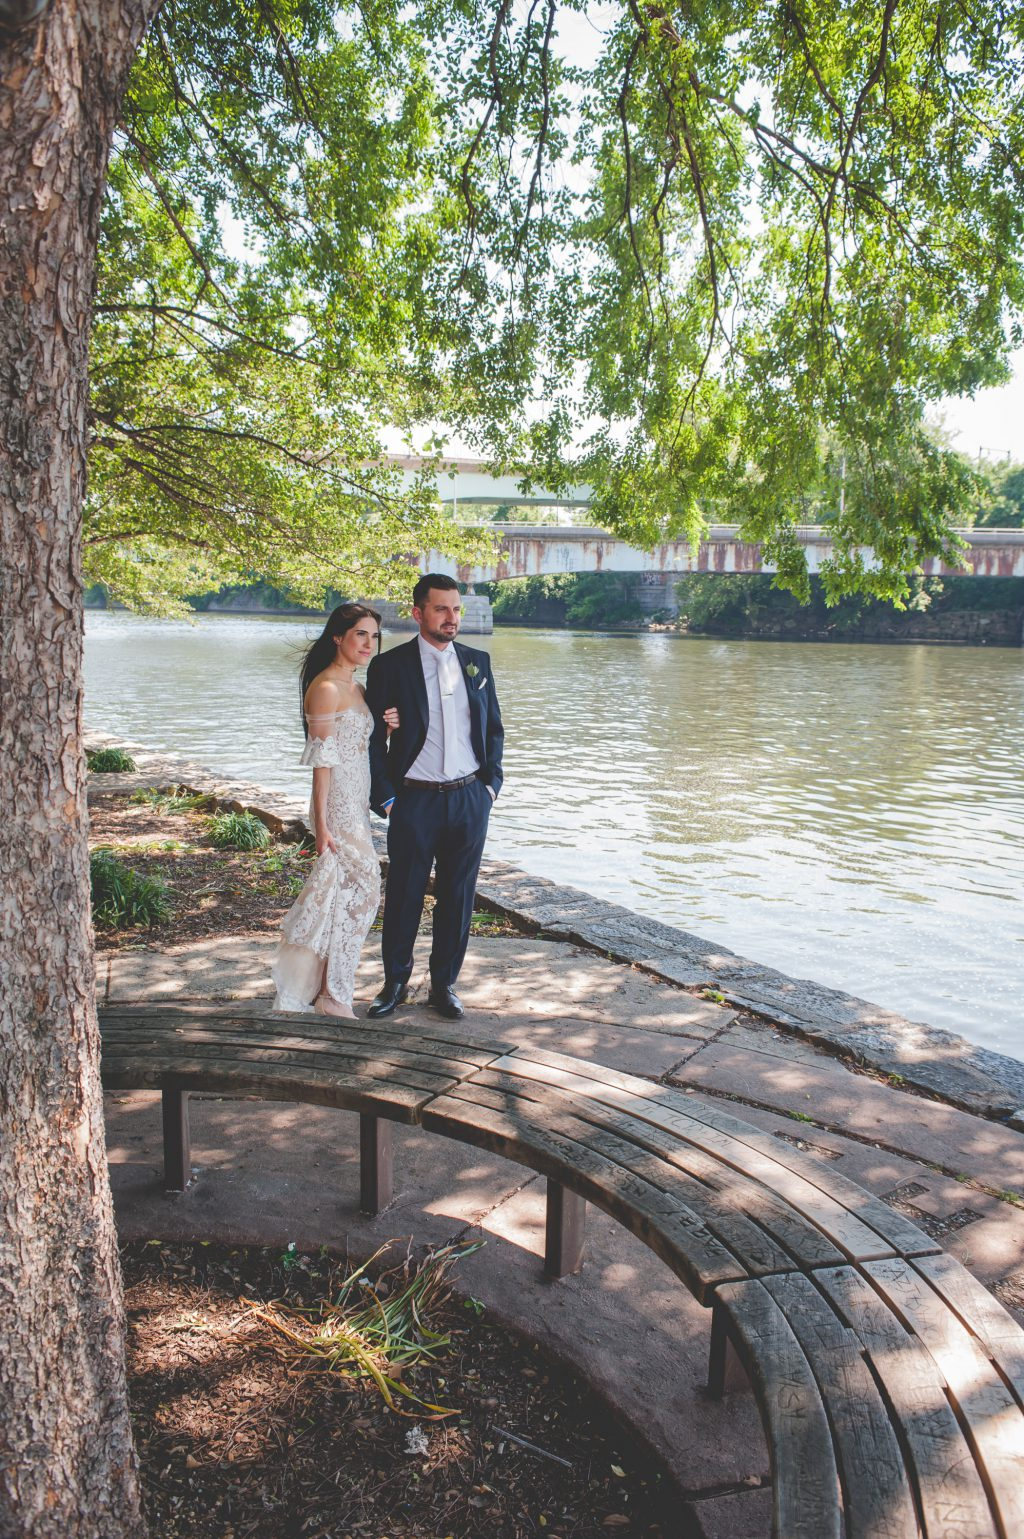 Philadelphia-wedding-Photographer-BG-Productions-141